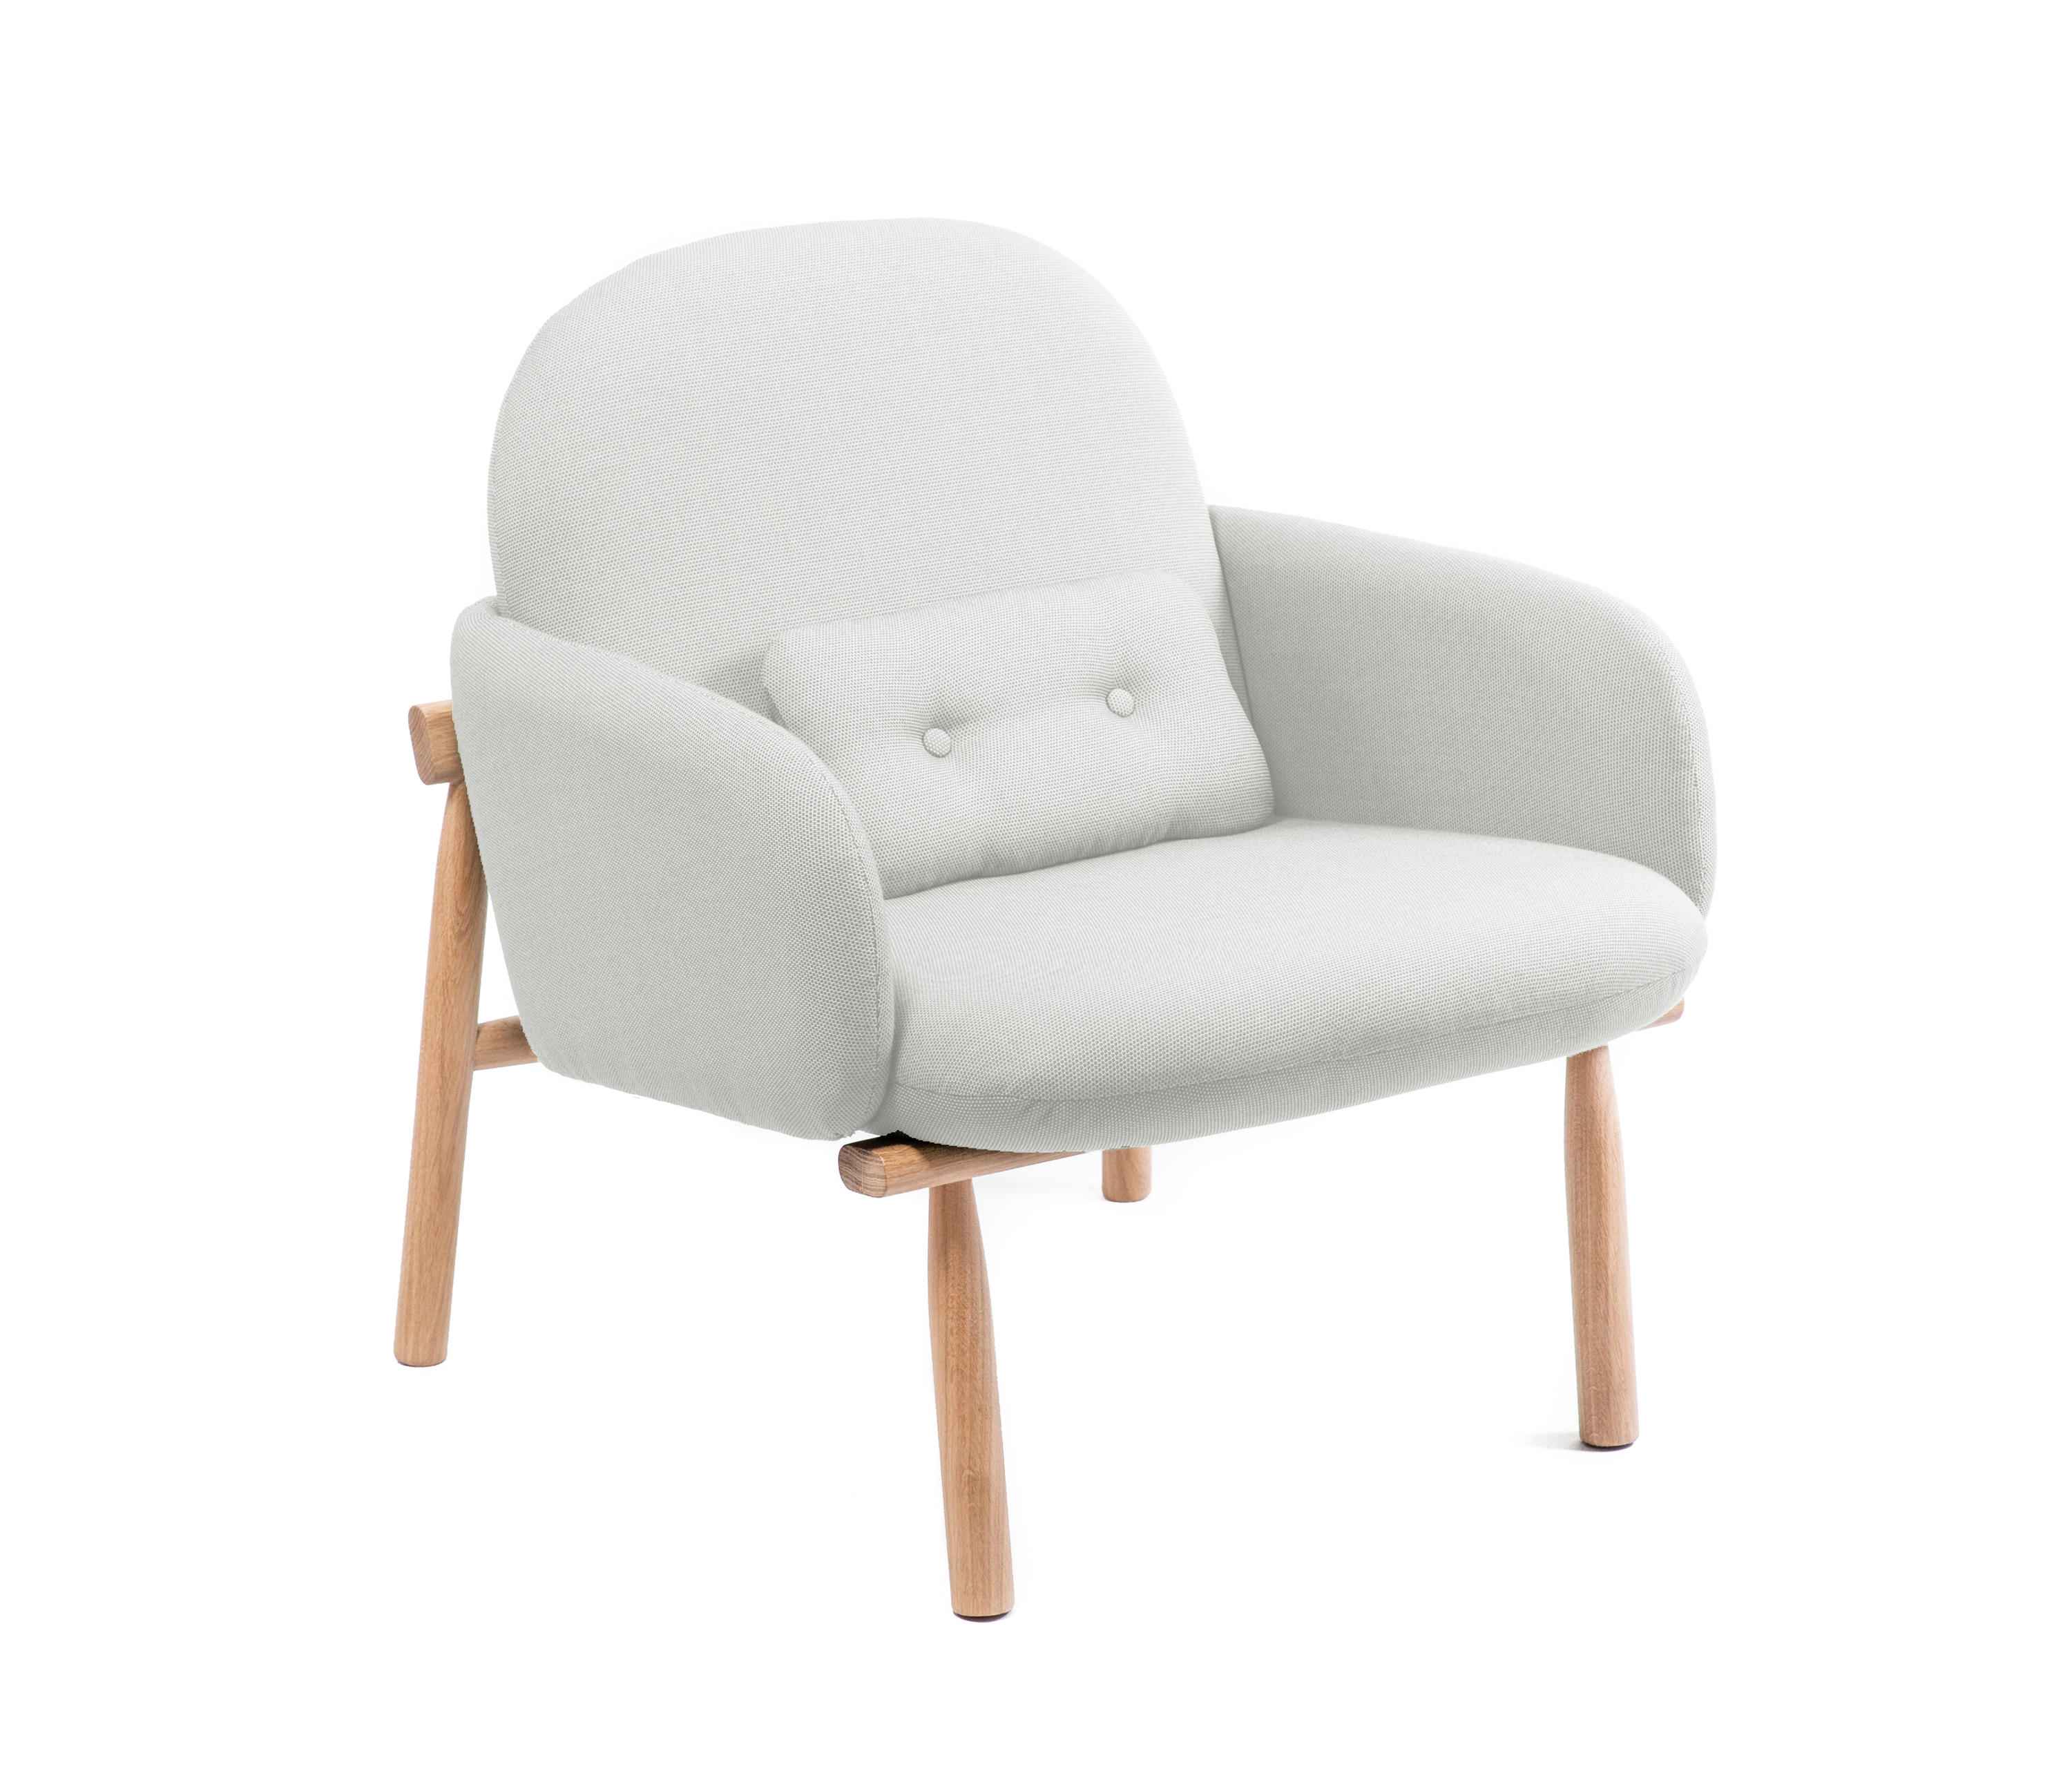 Armchair Georges, Light Grey By Hartô | Armchairs ...